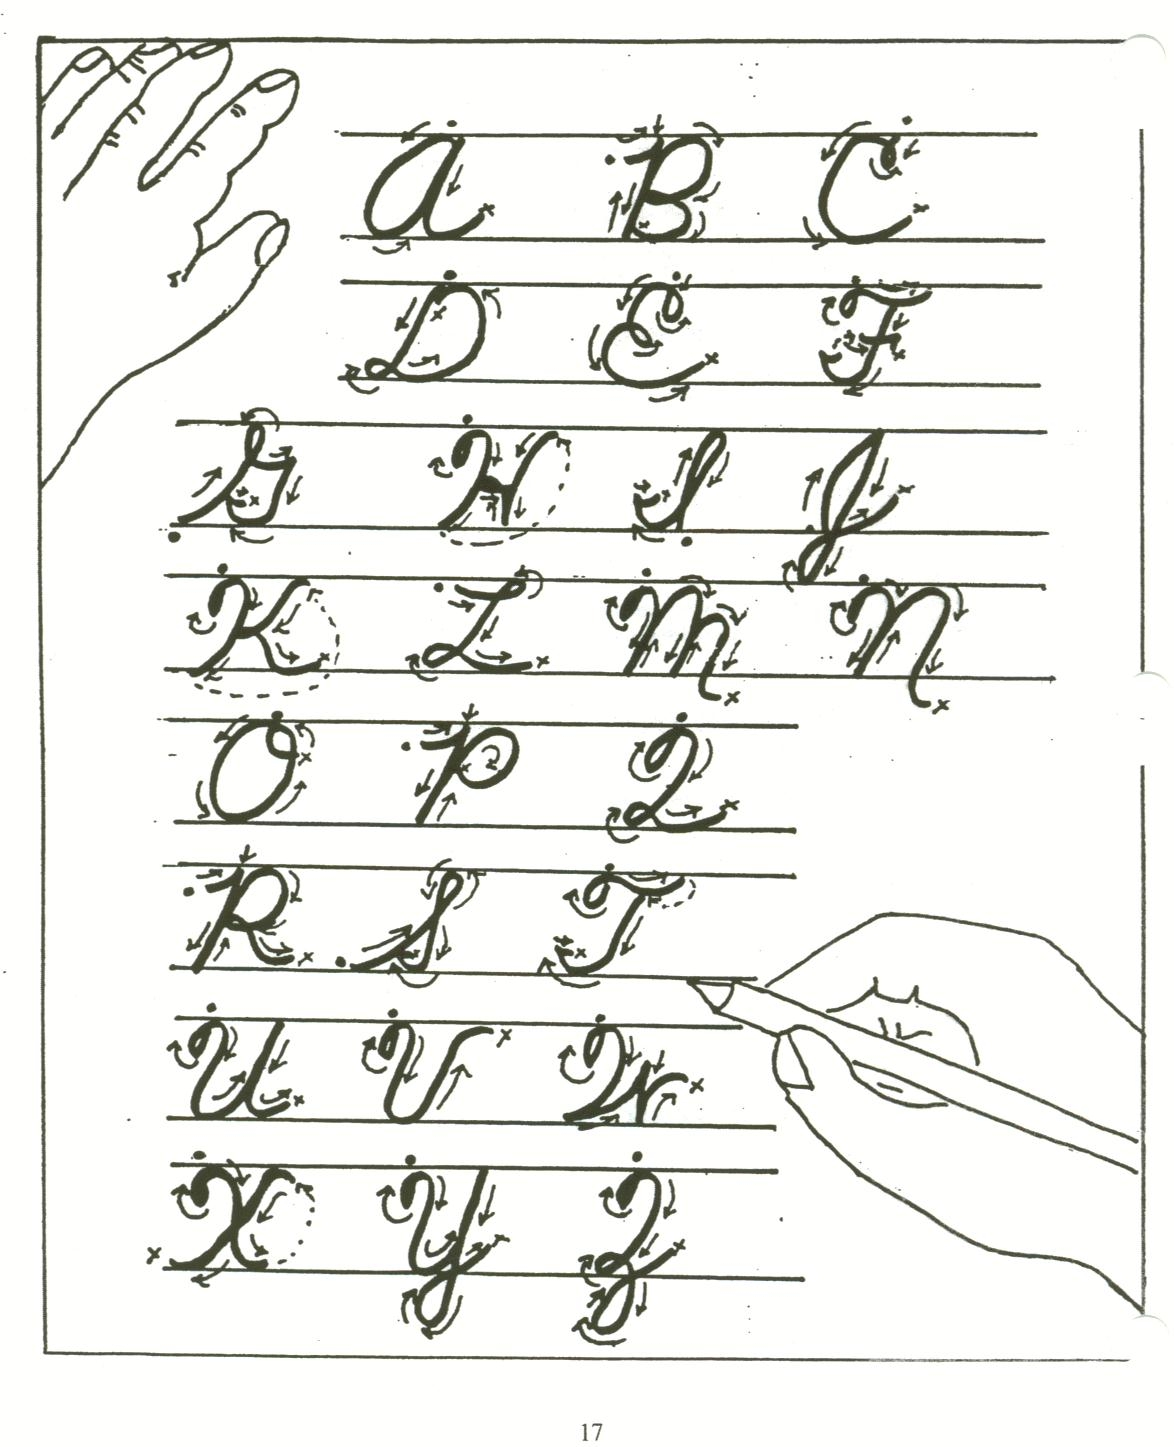 All Cursive Letters Worksheets 3rd Grade   Printable Worksheets and  Activities for Teachers [ 1447 x 1174 Pixel ]